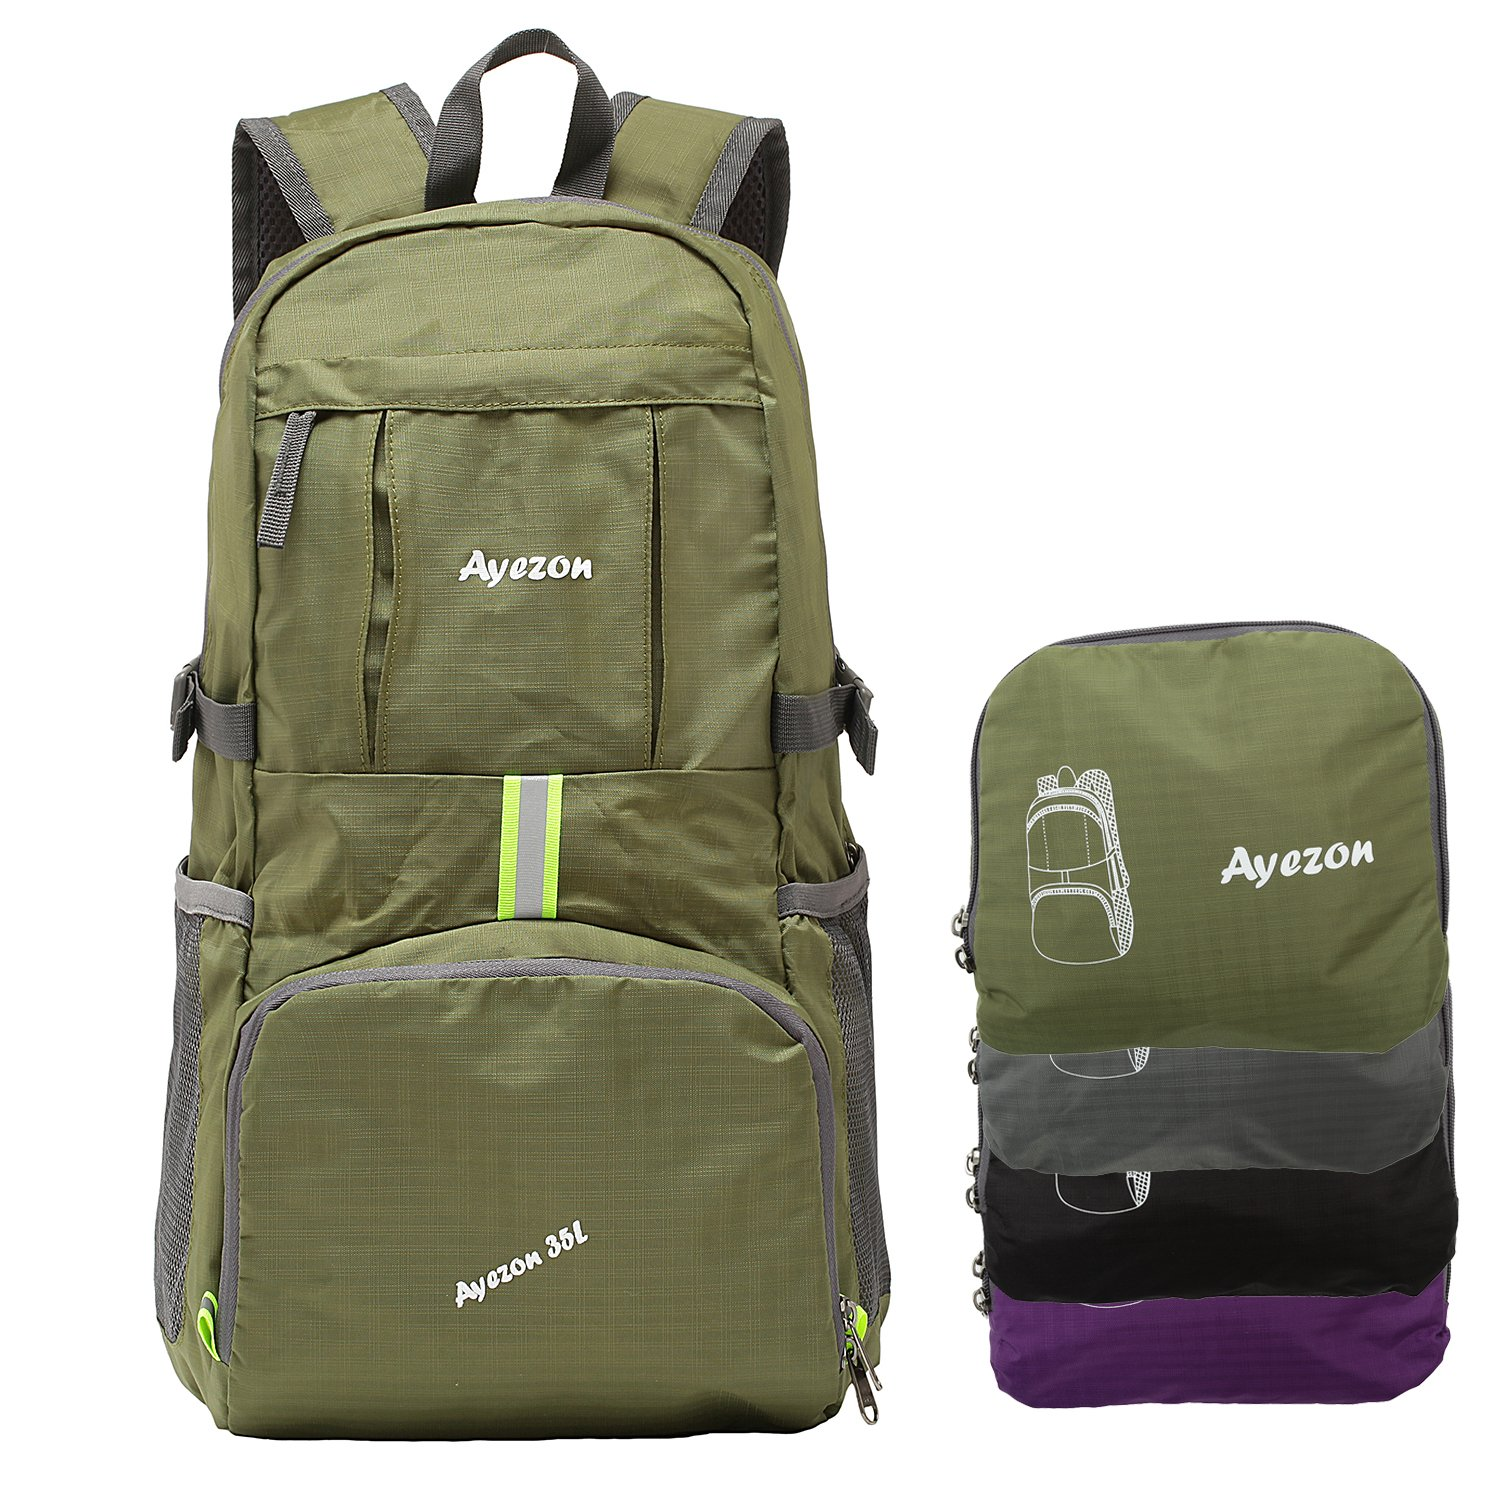 Ayezon Ultra Lightweight Packable Backpack Water Resistant Hiking Daypack, Foldable Travel Outdoor Backpack Green 35L